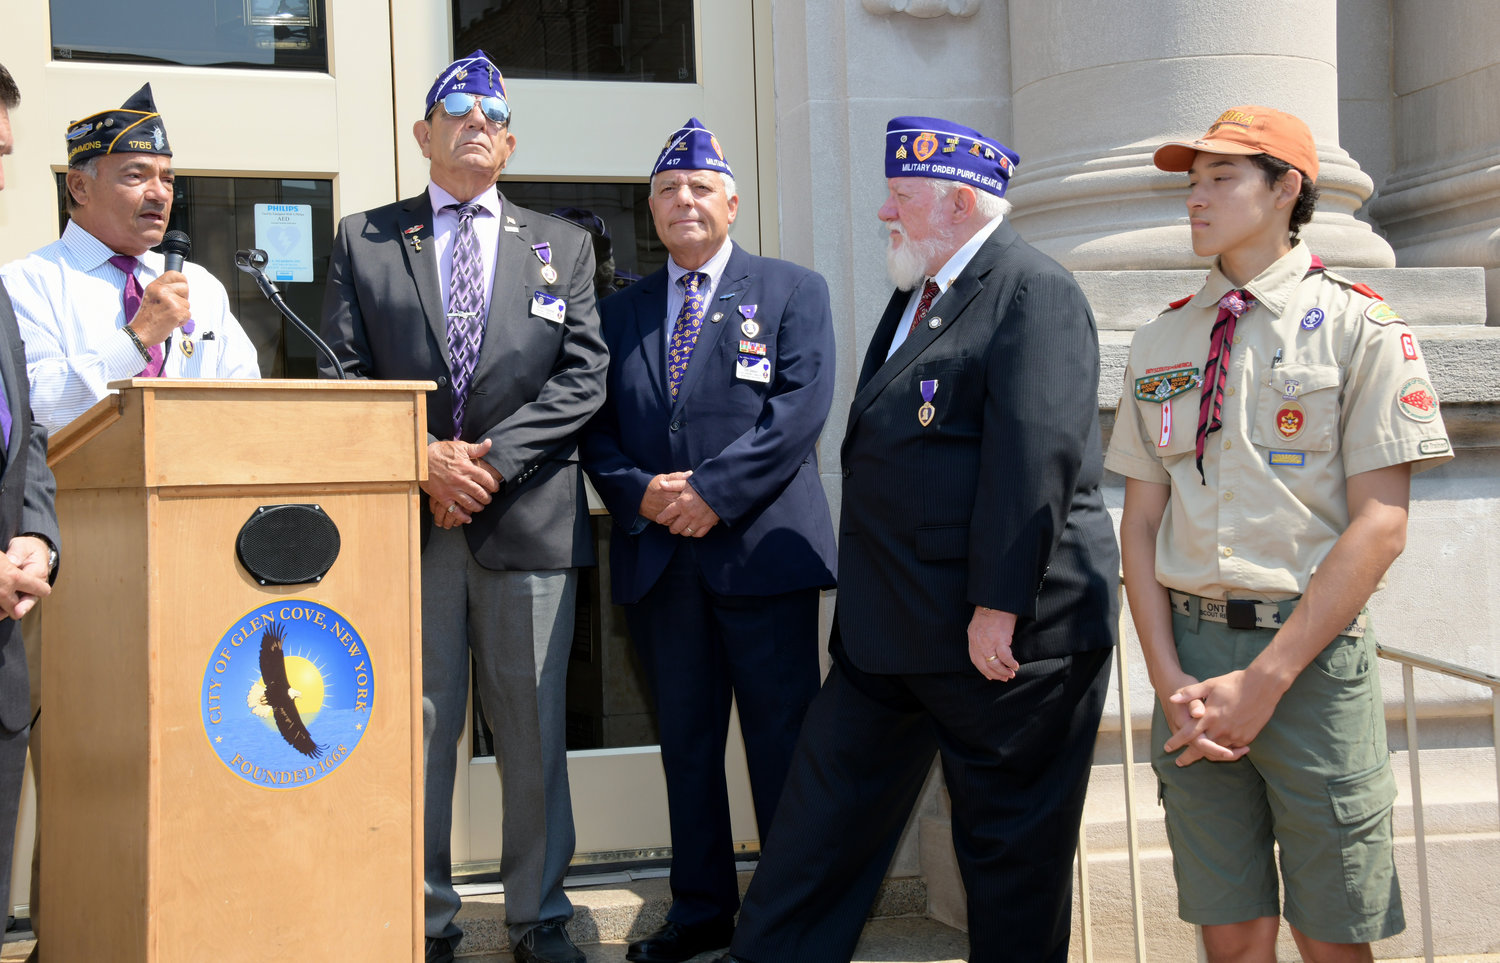 From the left, veteran Tony Jiminez discussed the history of the Purple Heart award along with fellow veterans Robert Chiappone, Tony Sparaco, Erie Mutz and Glen Cove Boy Scout Genalie Prezeau.